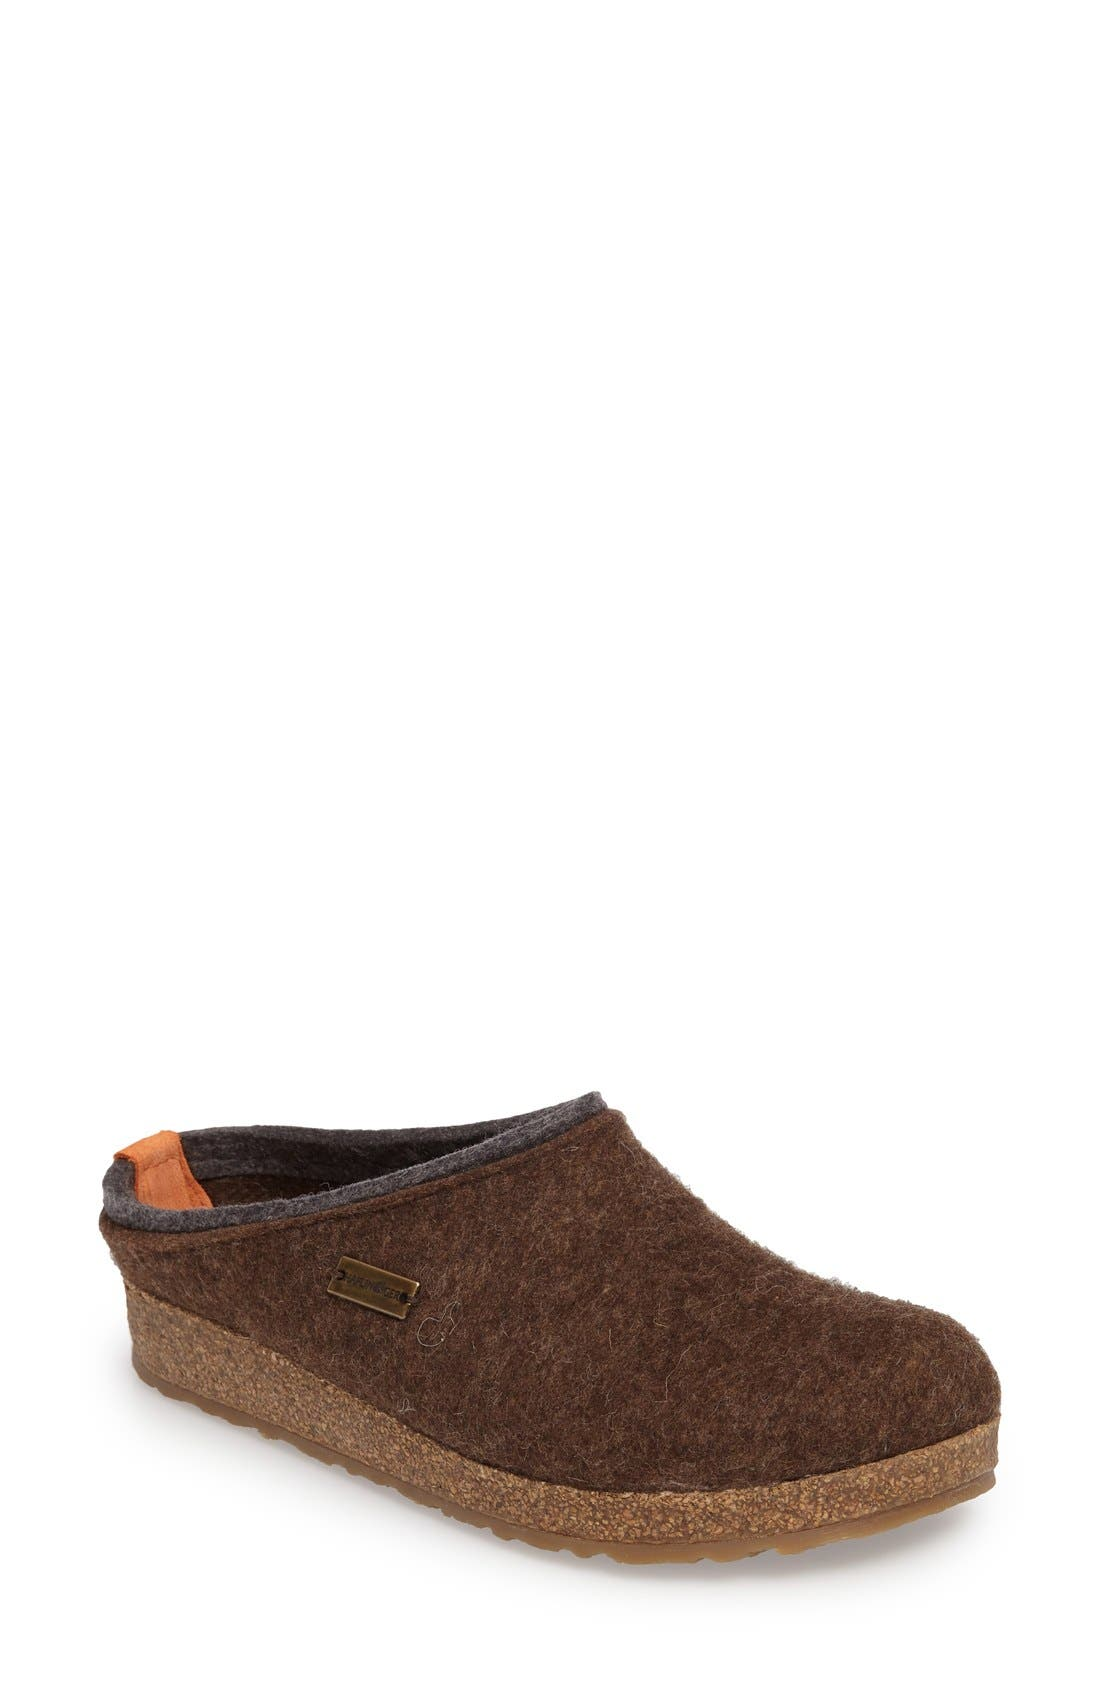 Kris Slipper,                             Main thumbnail 1, color,                             Chocolate Wool